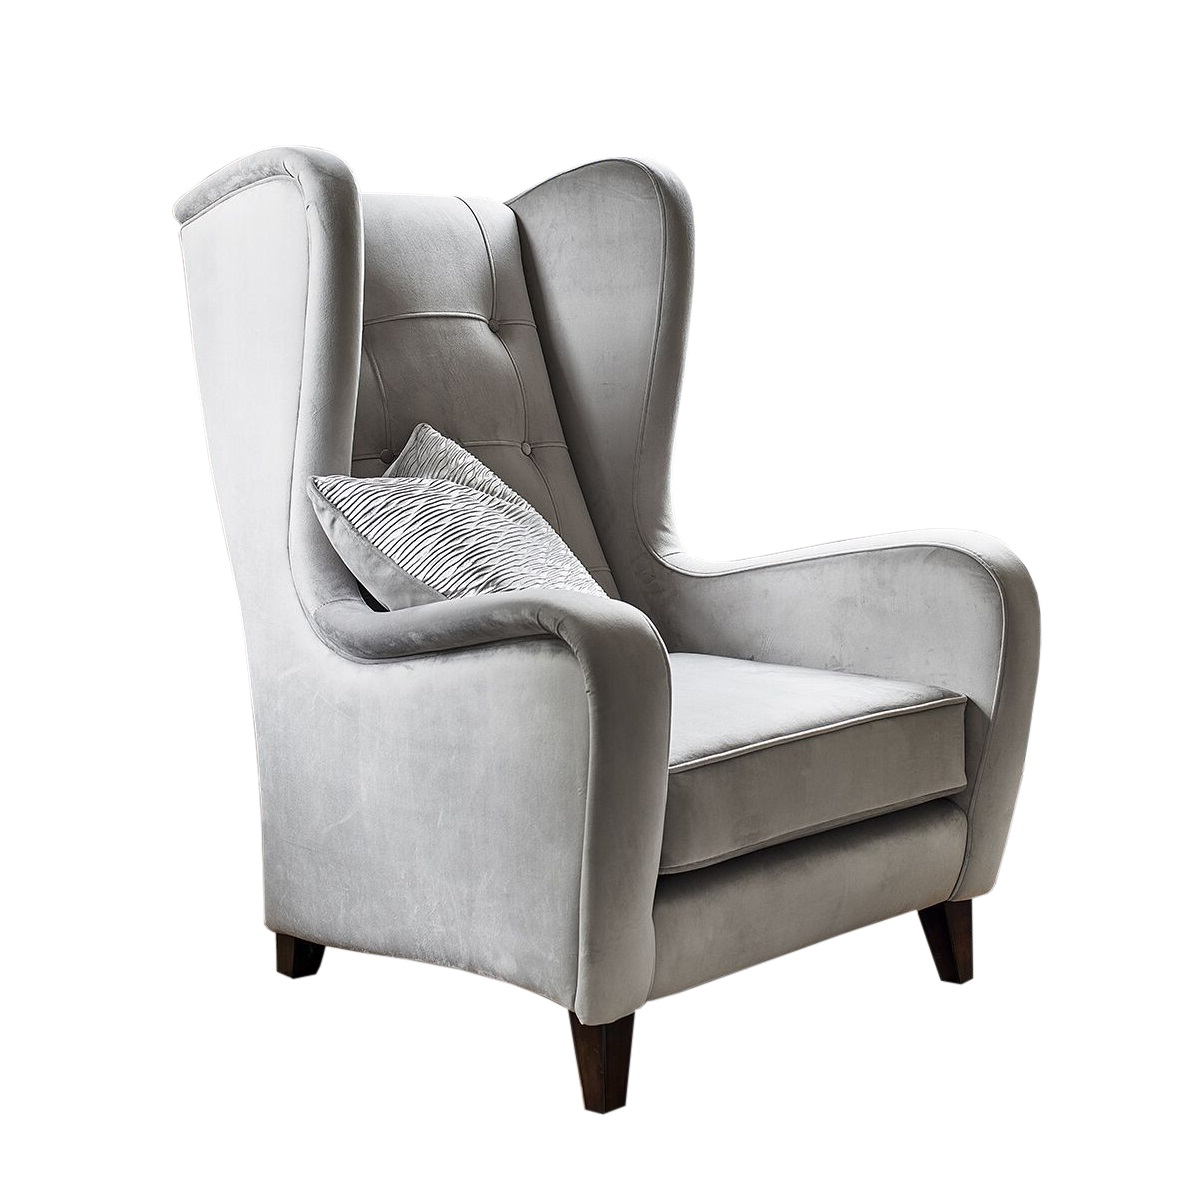 Victoria Throne Chair - OUTLET